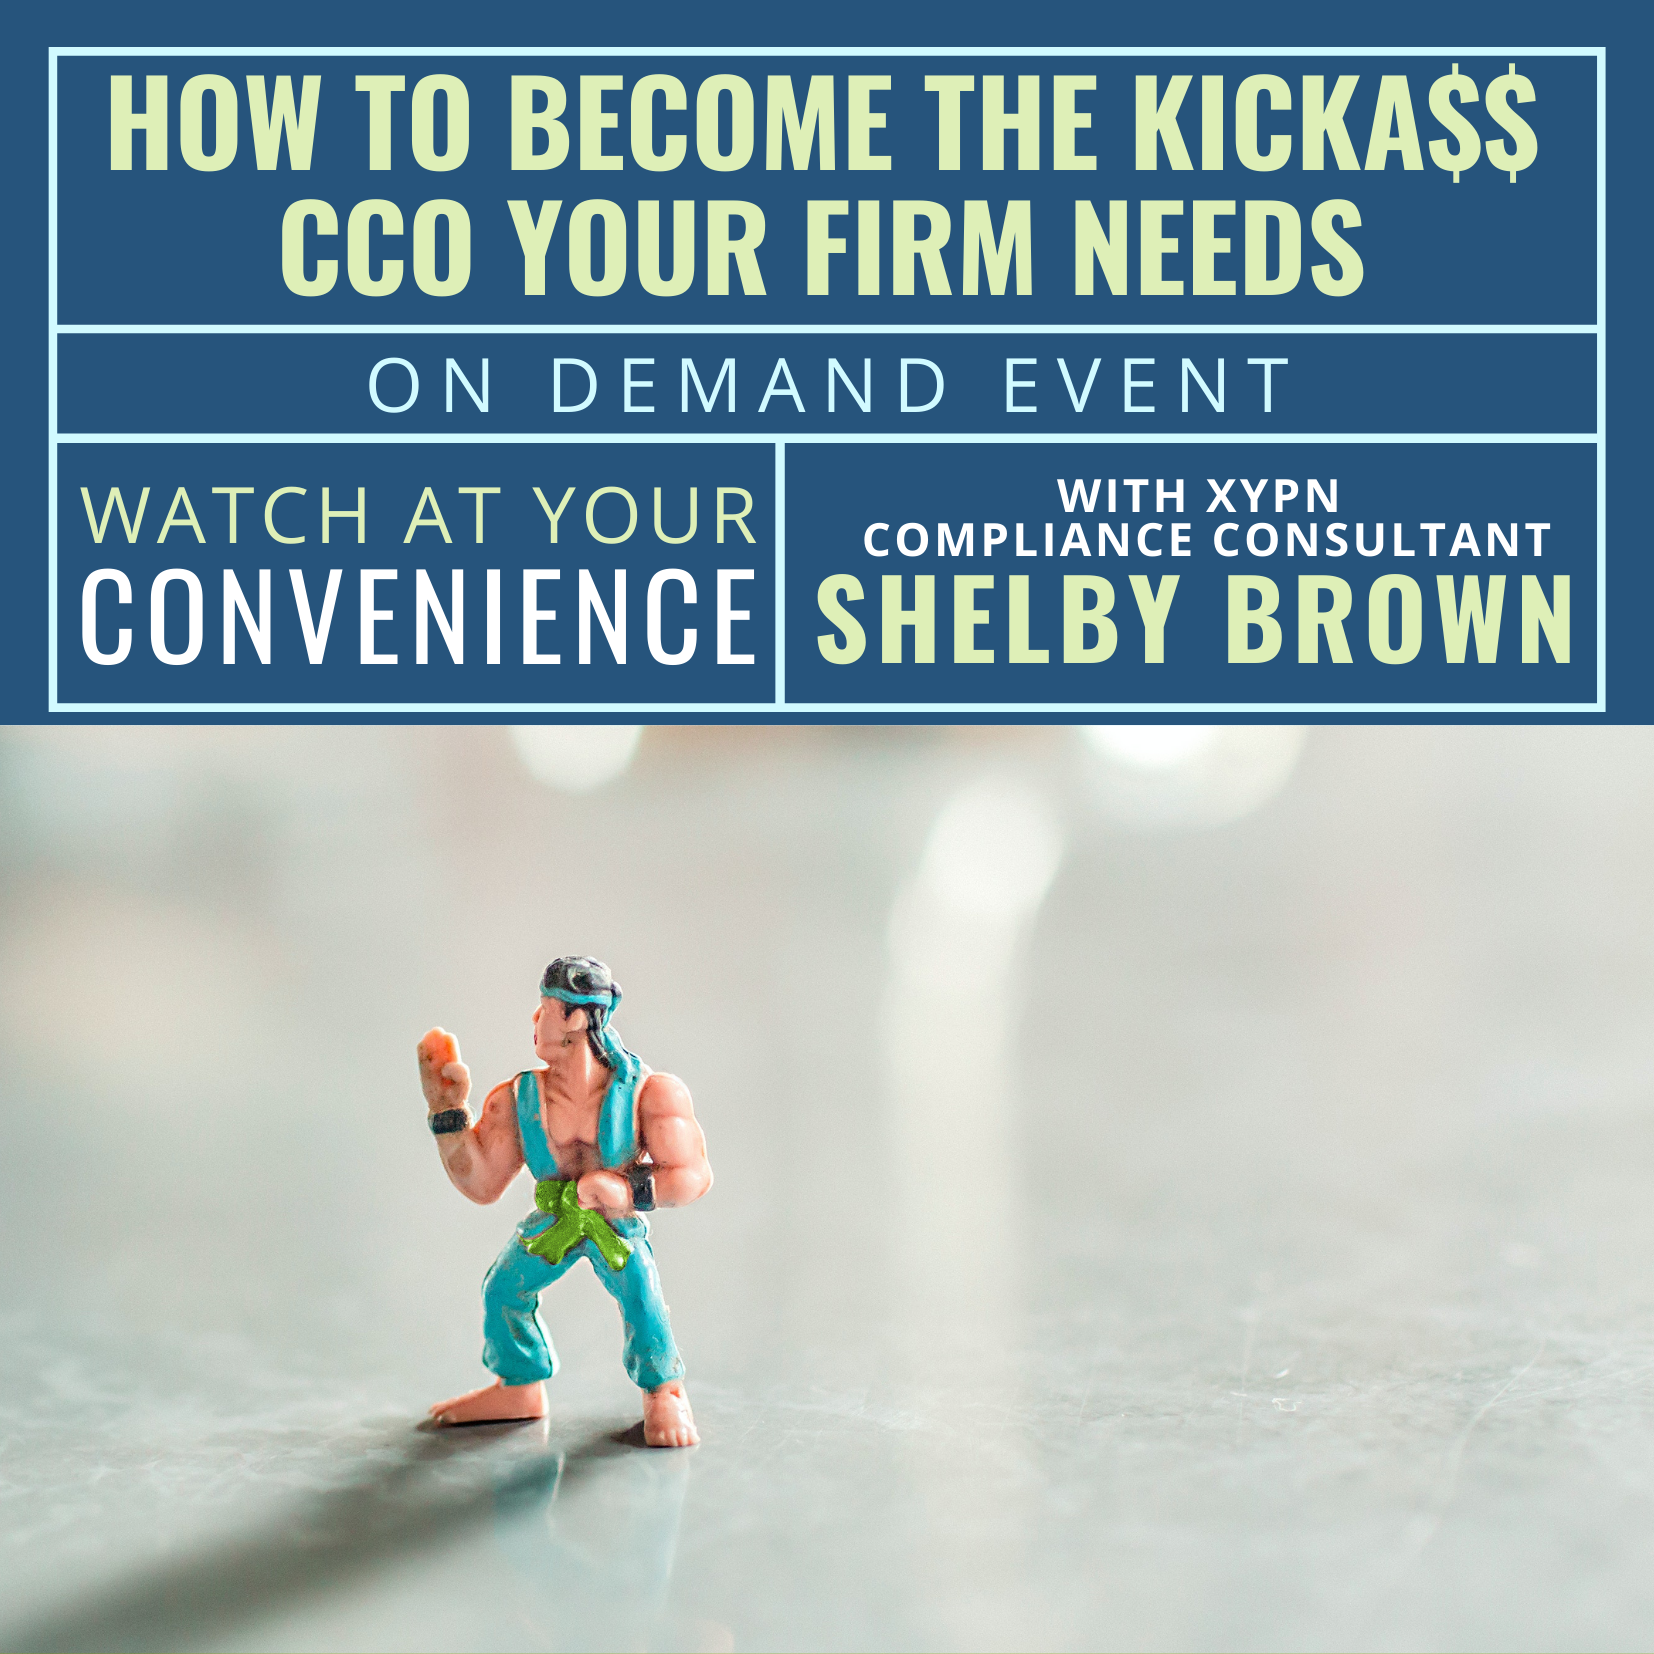 Free On Demand Event: How to Become the Kicka$$ CCO Your Firm Needs